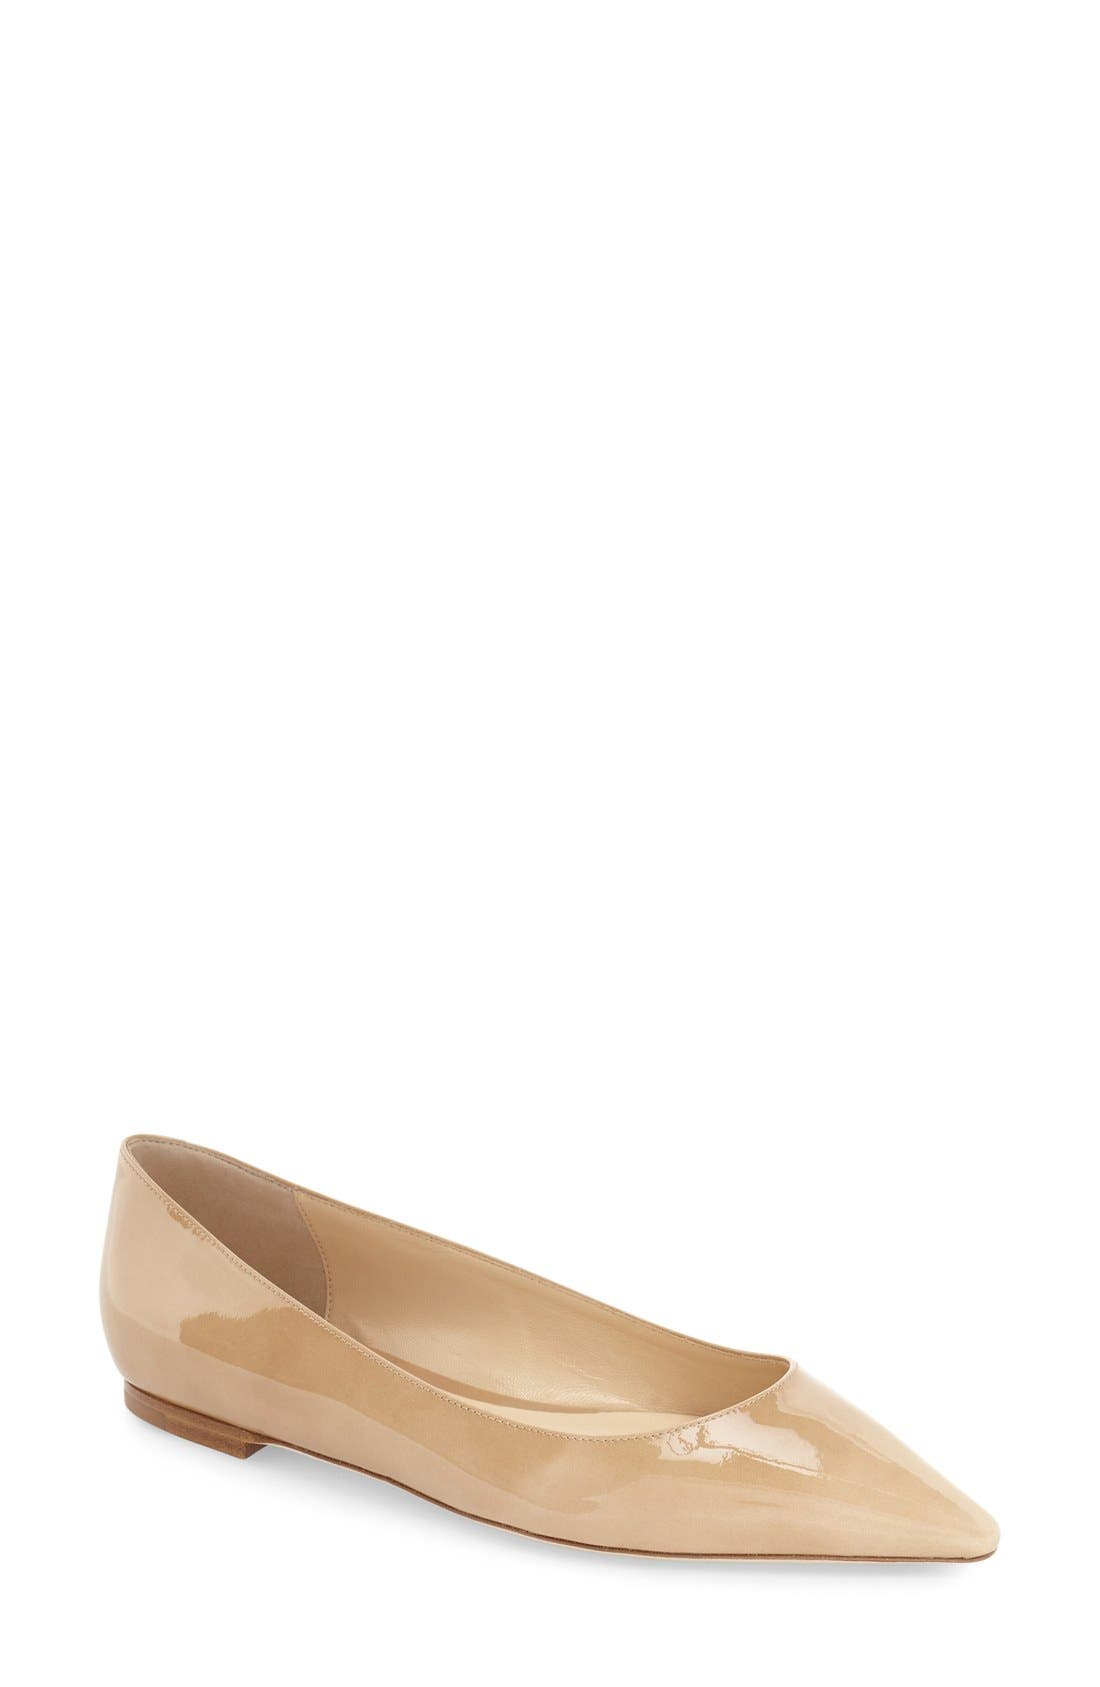 Alternate Image 1 Selected - Jimmy Choo 'Romy' Pointy Toe Flat (Women)